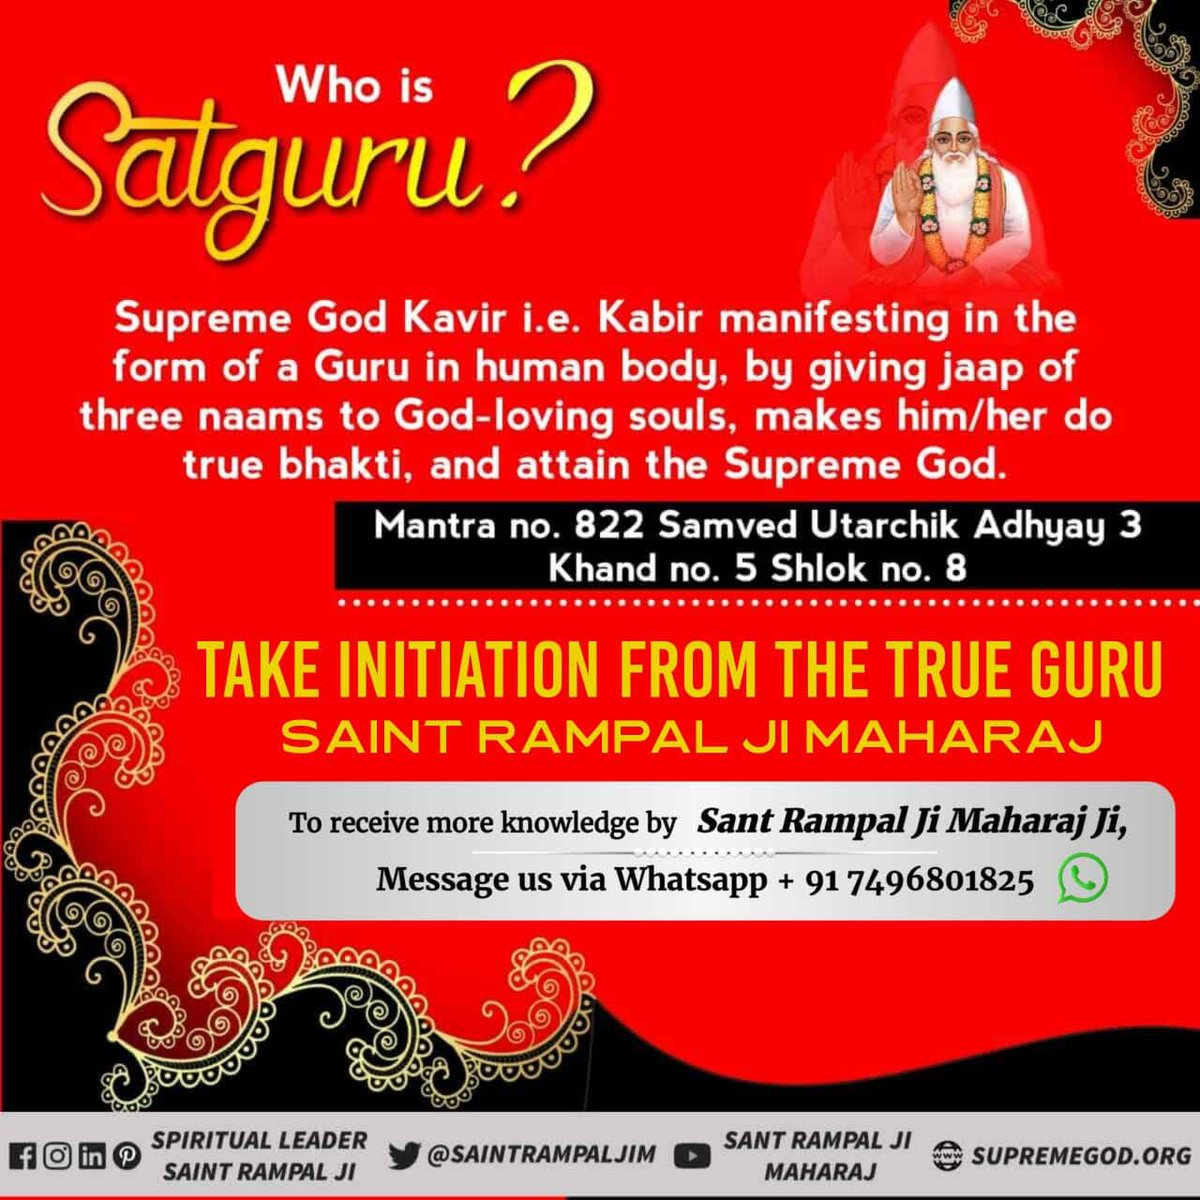 #GuruPurnima Satguru is not only a Preacher of Knowledge, He Himself also does Scripture-based Worship with mind, deeds, and words and gets His disciples to do Worship with the same Dedication.   Presently, Sant Rampal Ji Maharaj does this. #JagatGuru_SaintRampalJipic.twitter.com/oX4v06LegZ  by ☔